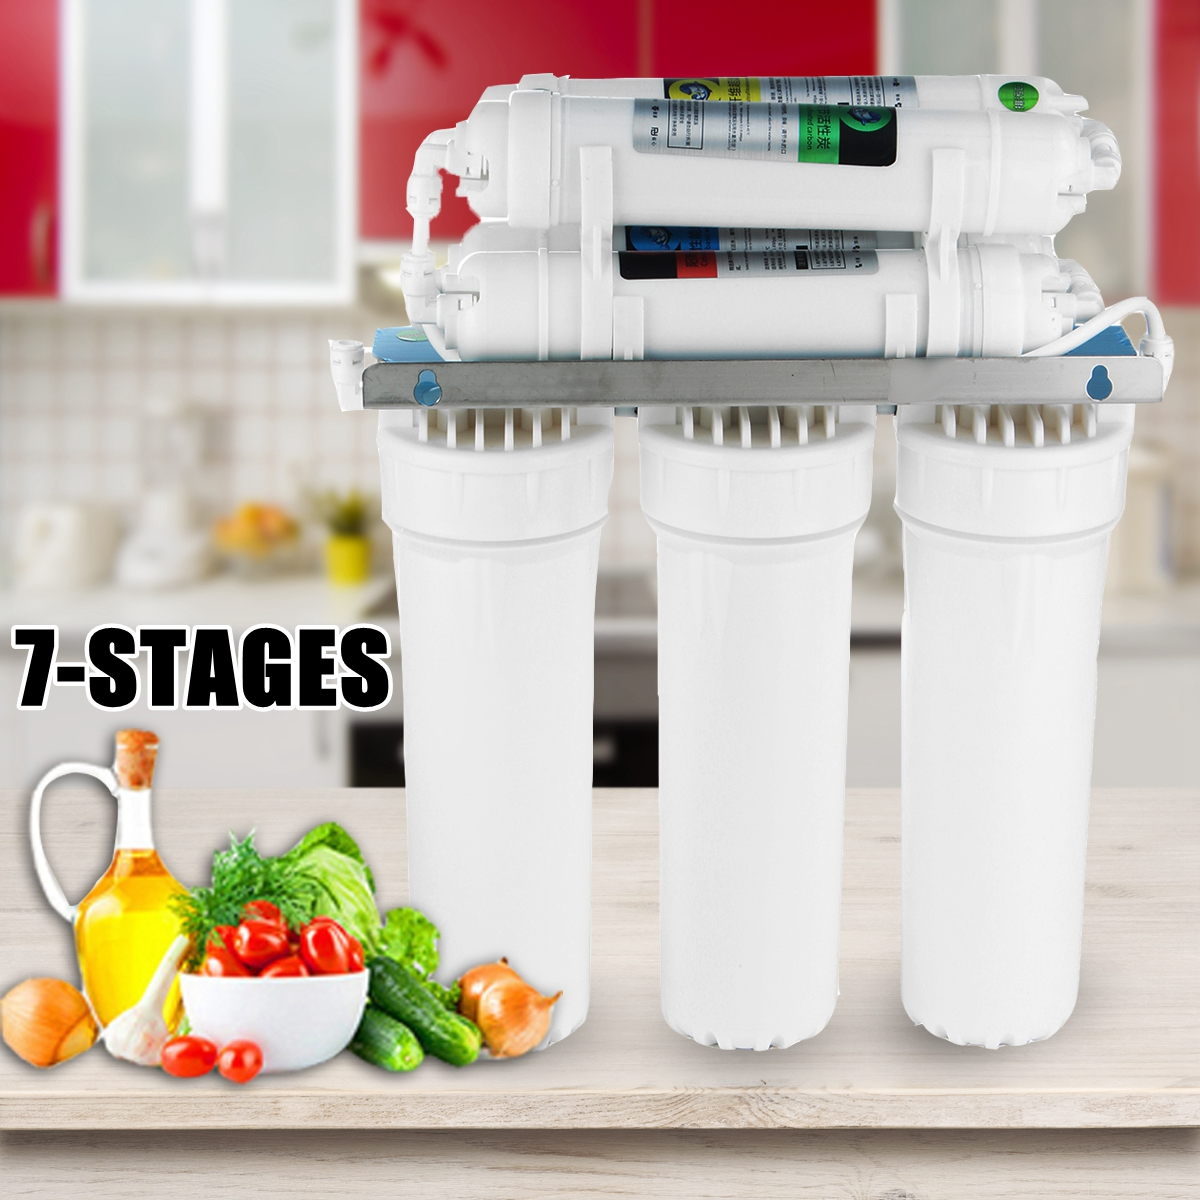 7-Stage Water Filter System Drinking Reverse Osmosis System RO Home Kitchen Purifier Water Filters With Faucet Valve Water Pipe household water filter tap connector adaptor push fit 3 4 inch bsp to 1 4 inch reverse osmosis ro white watering fitting pipe